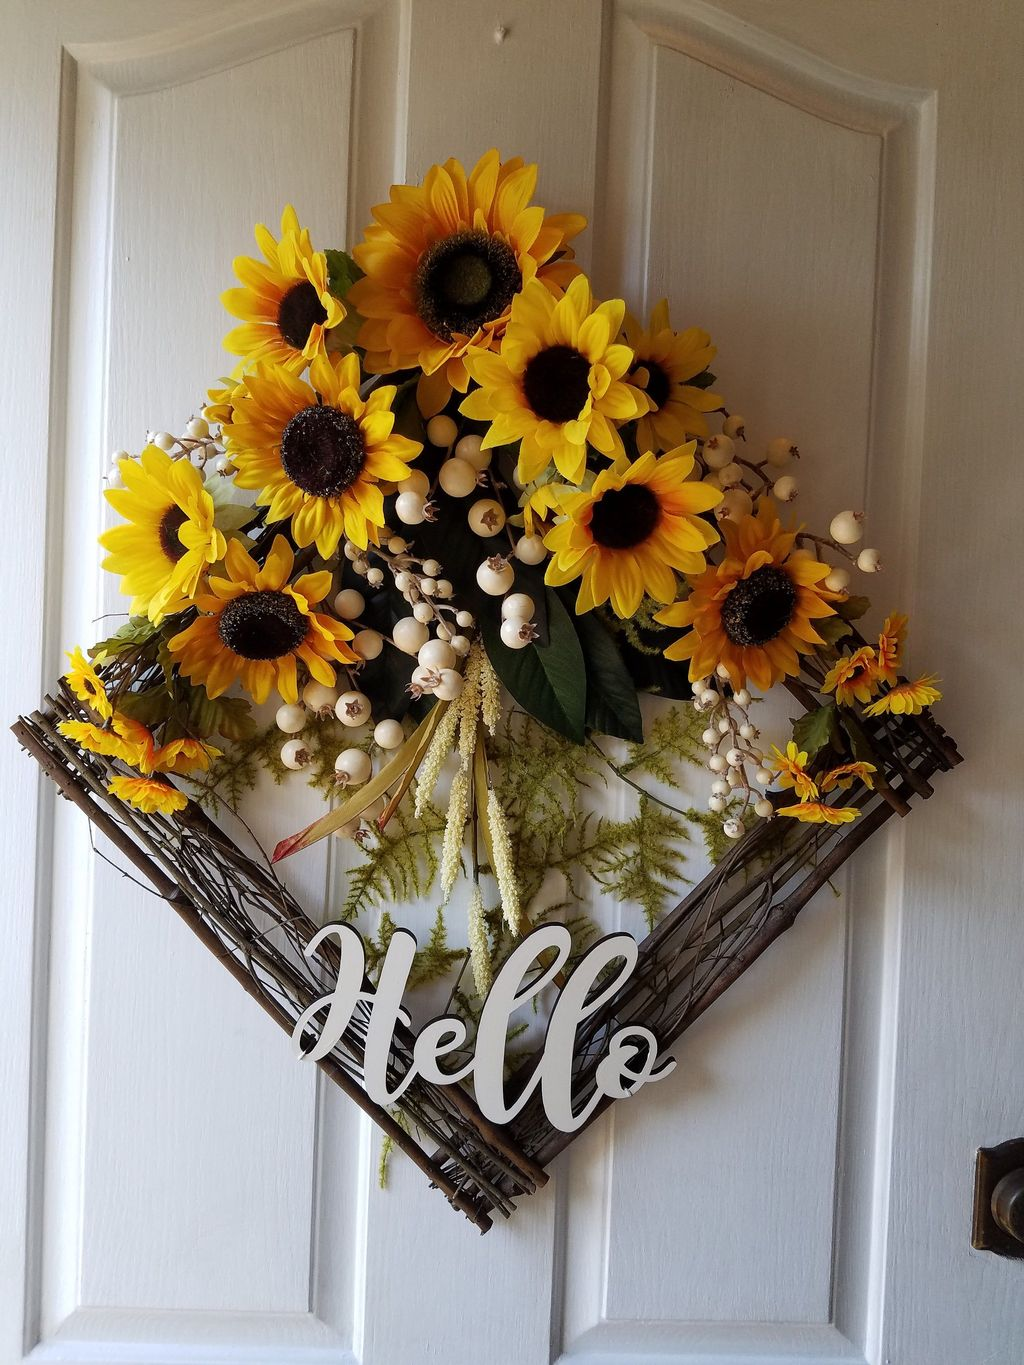 Inspiring Summer Wreath Design Ideas You Should Copy 10